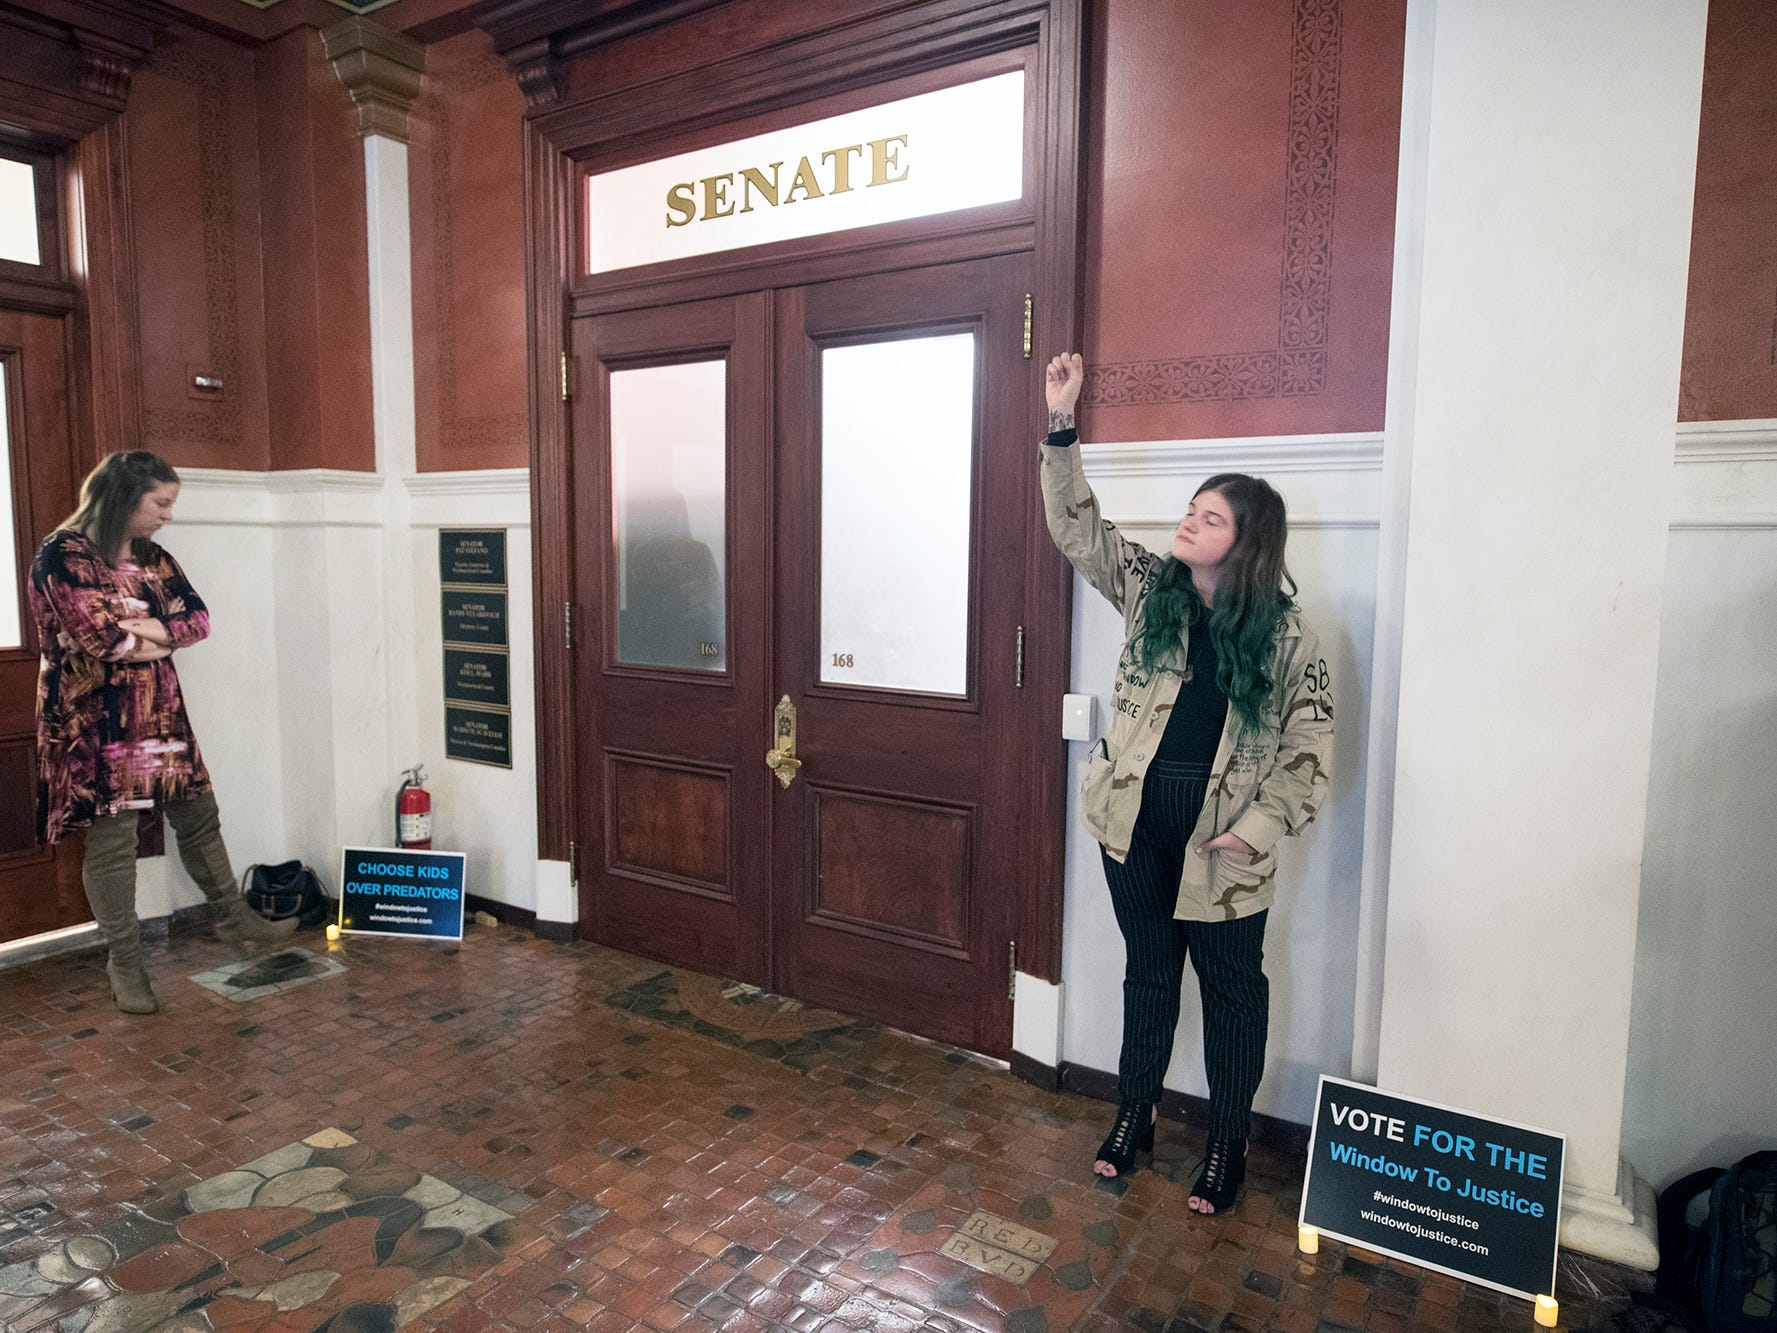 Taylor Ecker, right, stands at the doors of the Senate chamber reciting statistics of sexual abuse during the demonstration for statute of limitations reform to the state's childhood sexual abuse laws at the state capitol in Harrisburg Monday October, 15, 2018. Becca Velner, at left, was a victim of non-clergy sexual abuse.